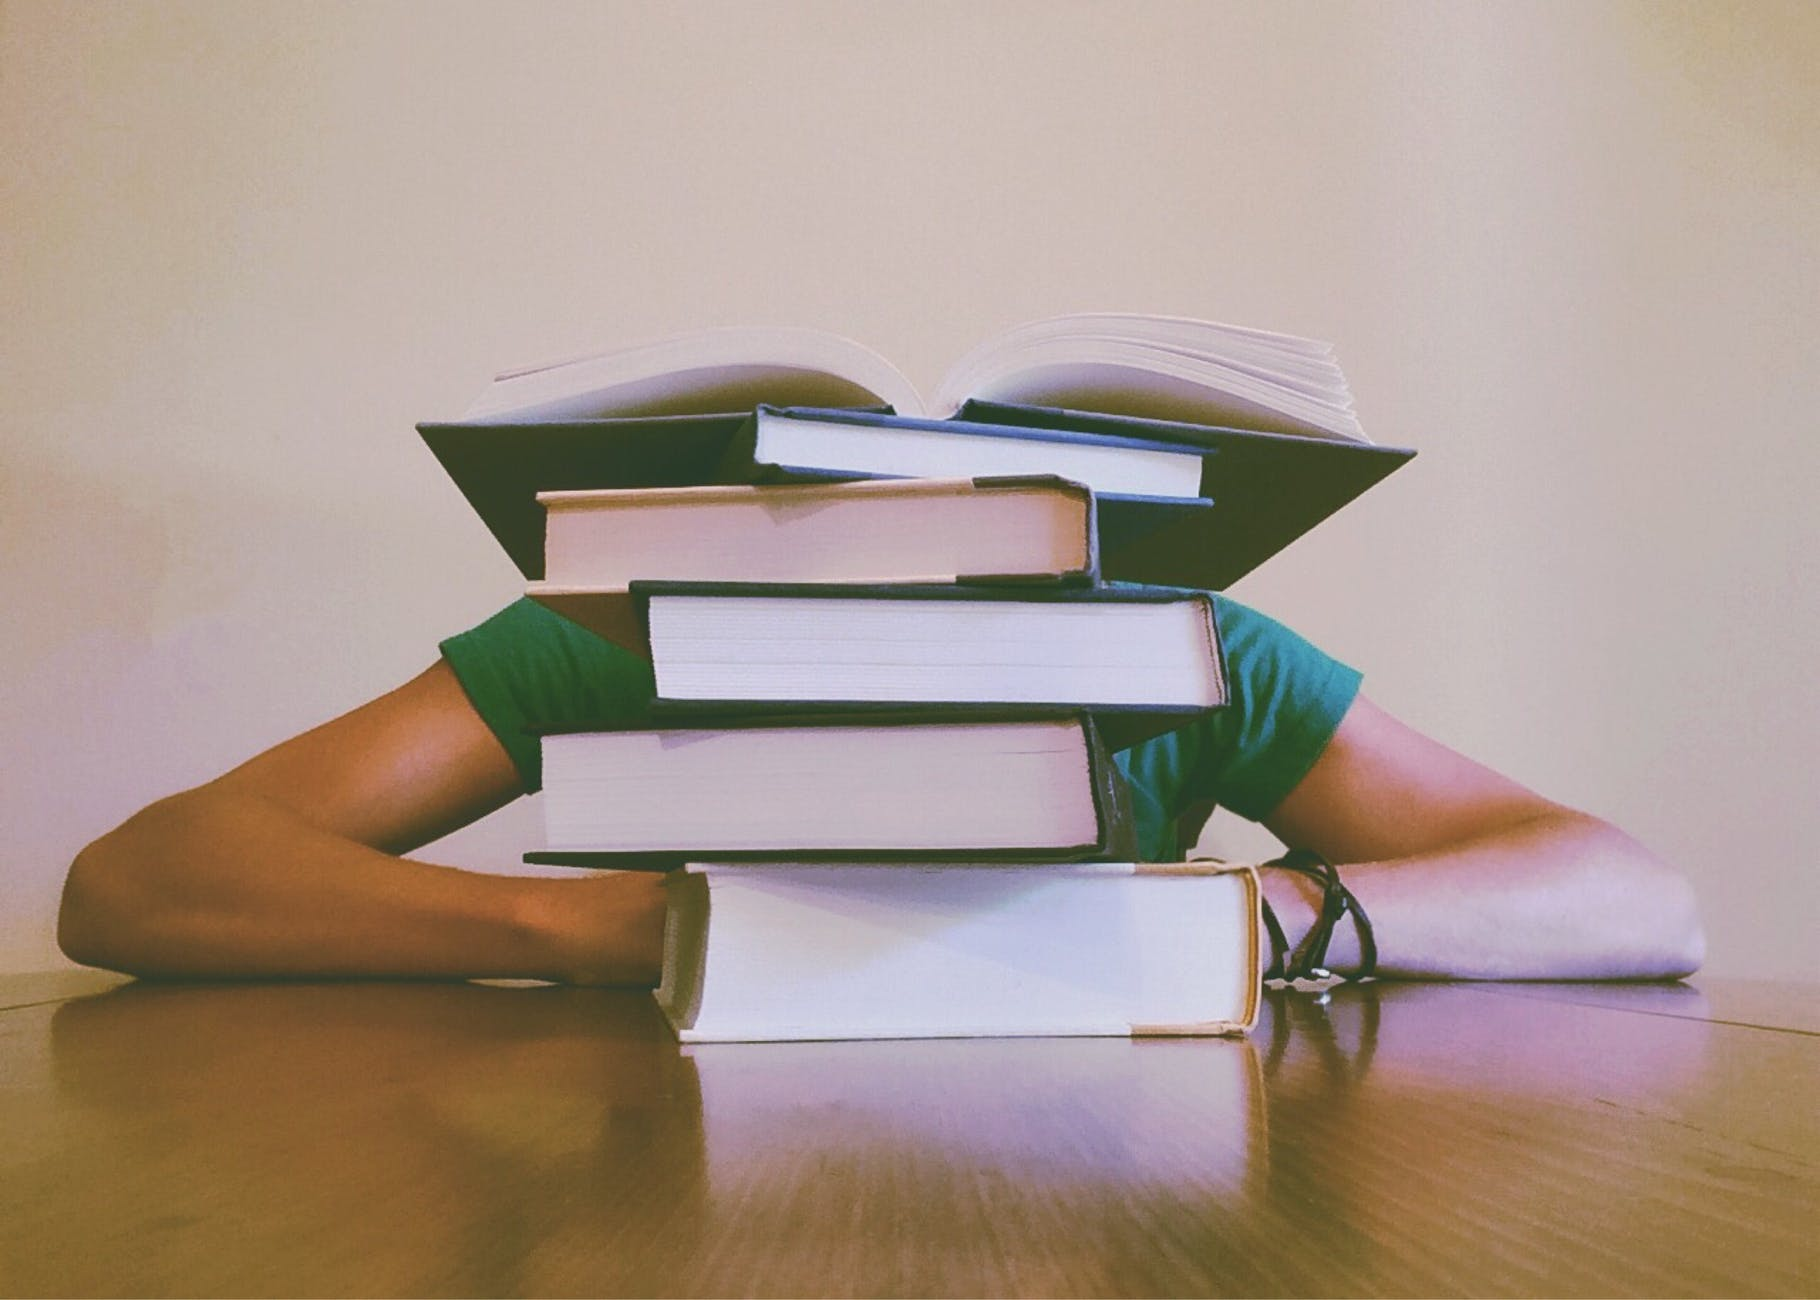 What to do with a stressful assignment